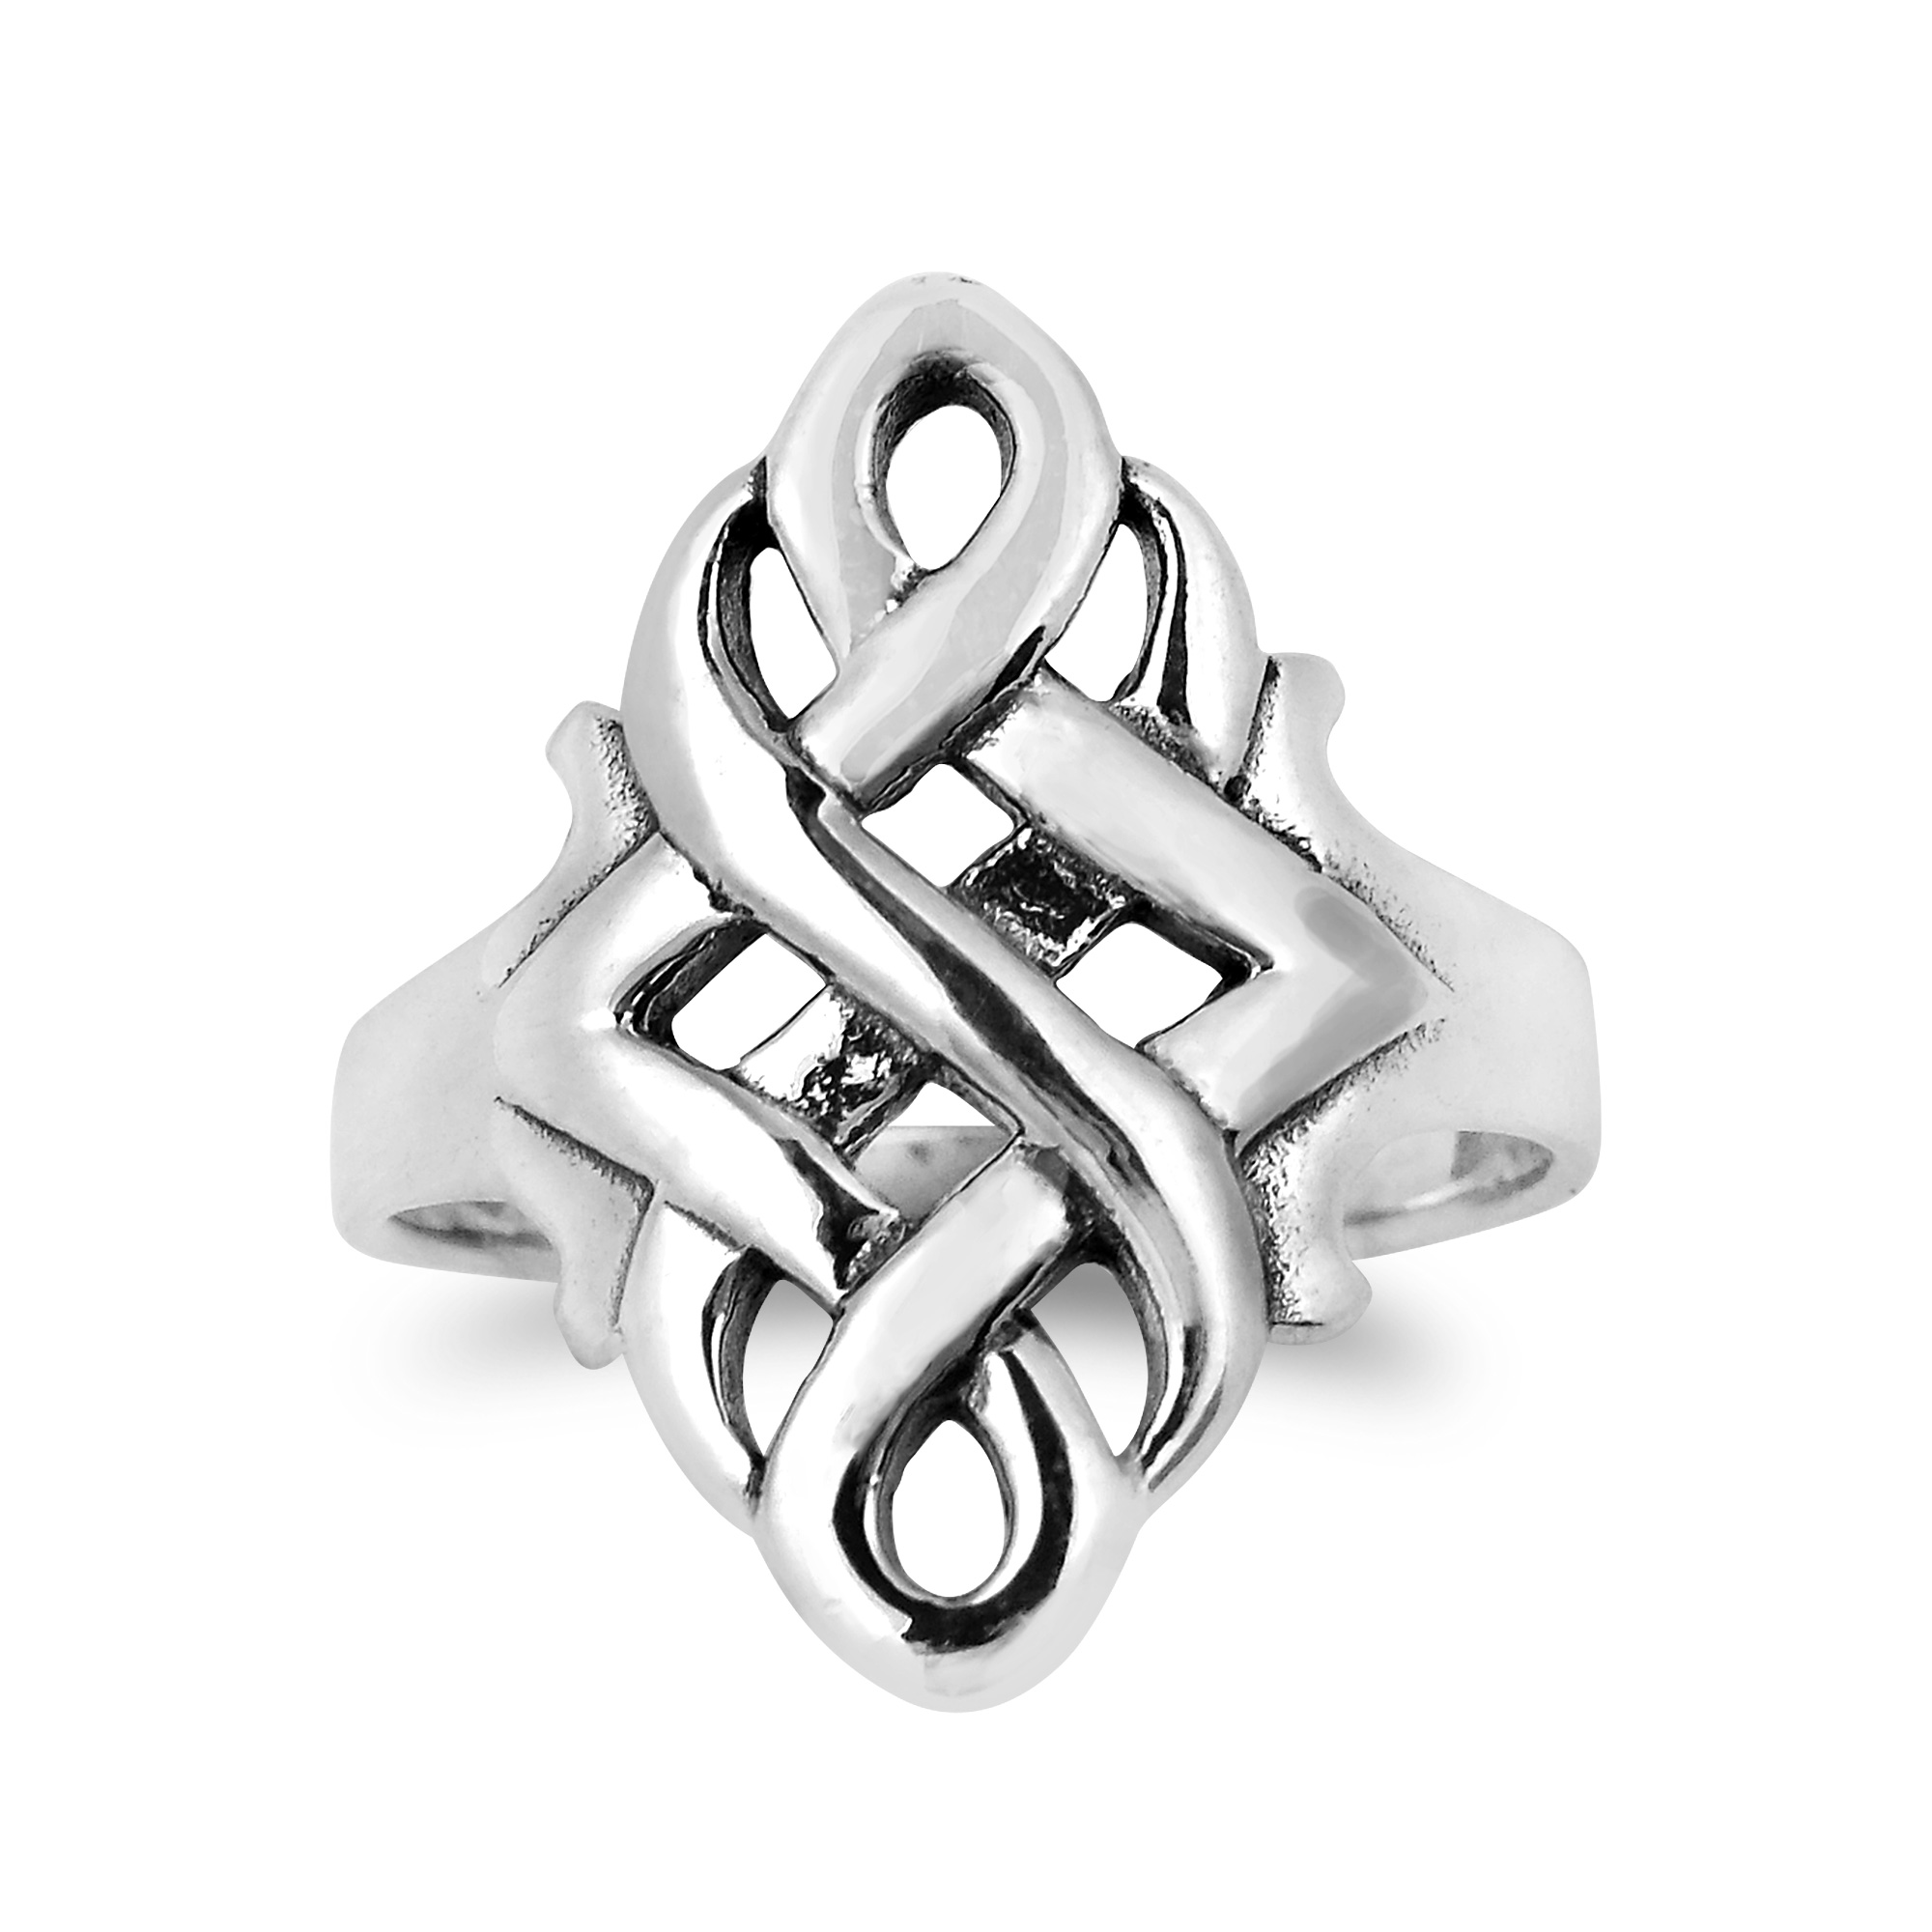 eternal ribbon rings categories favorites zoom cross rg love endless james ring avery customer